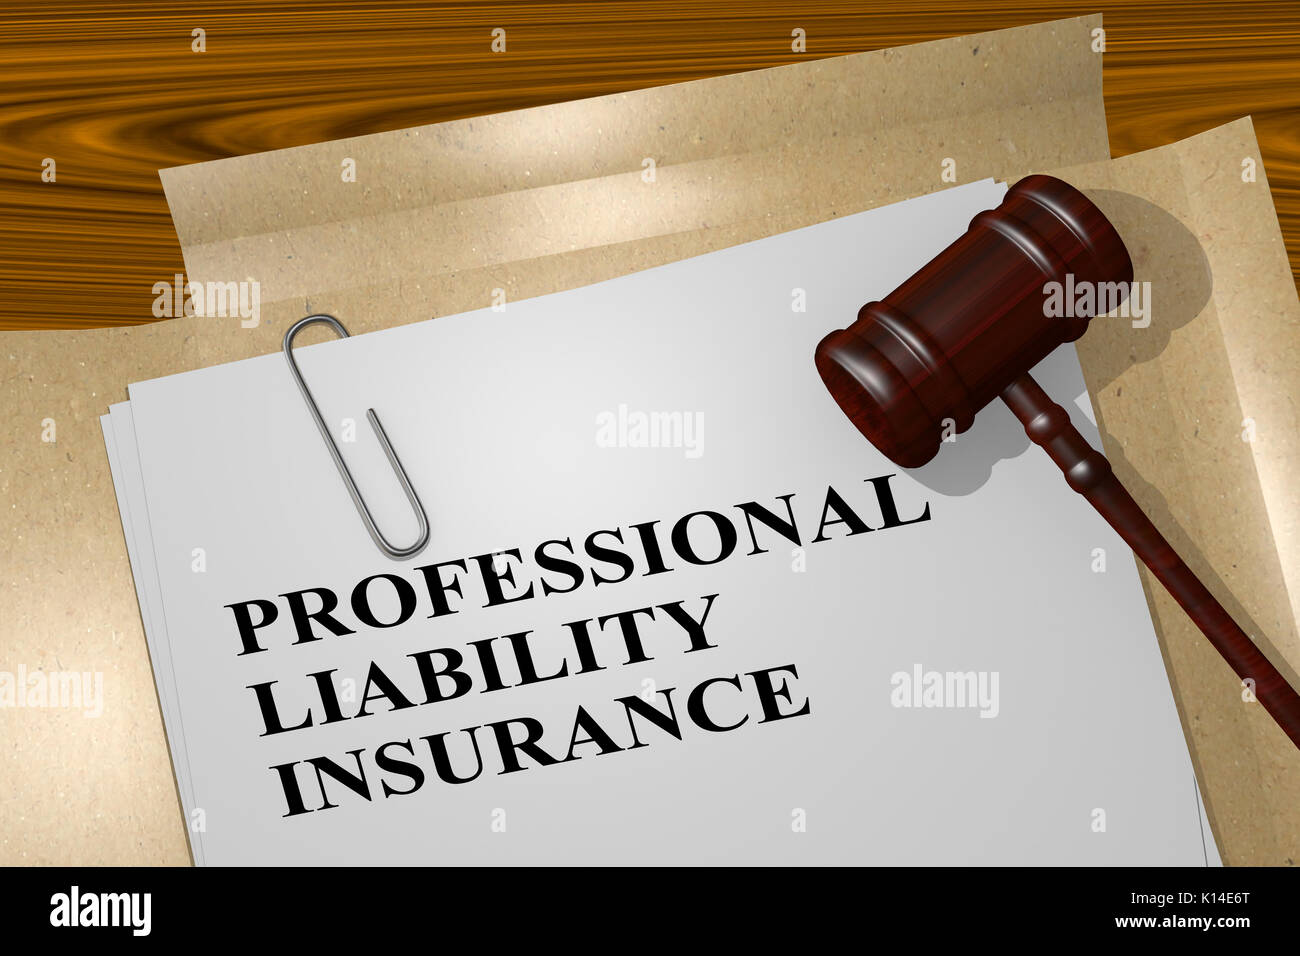 3D illustration of 'PROFESSIONAL LIABILITY INSURANCE' title on legal document - Stock Image